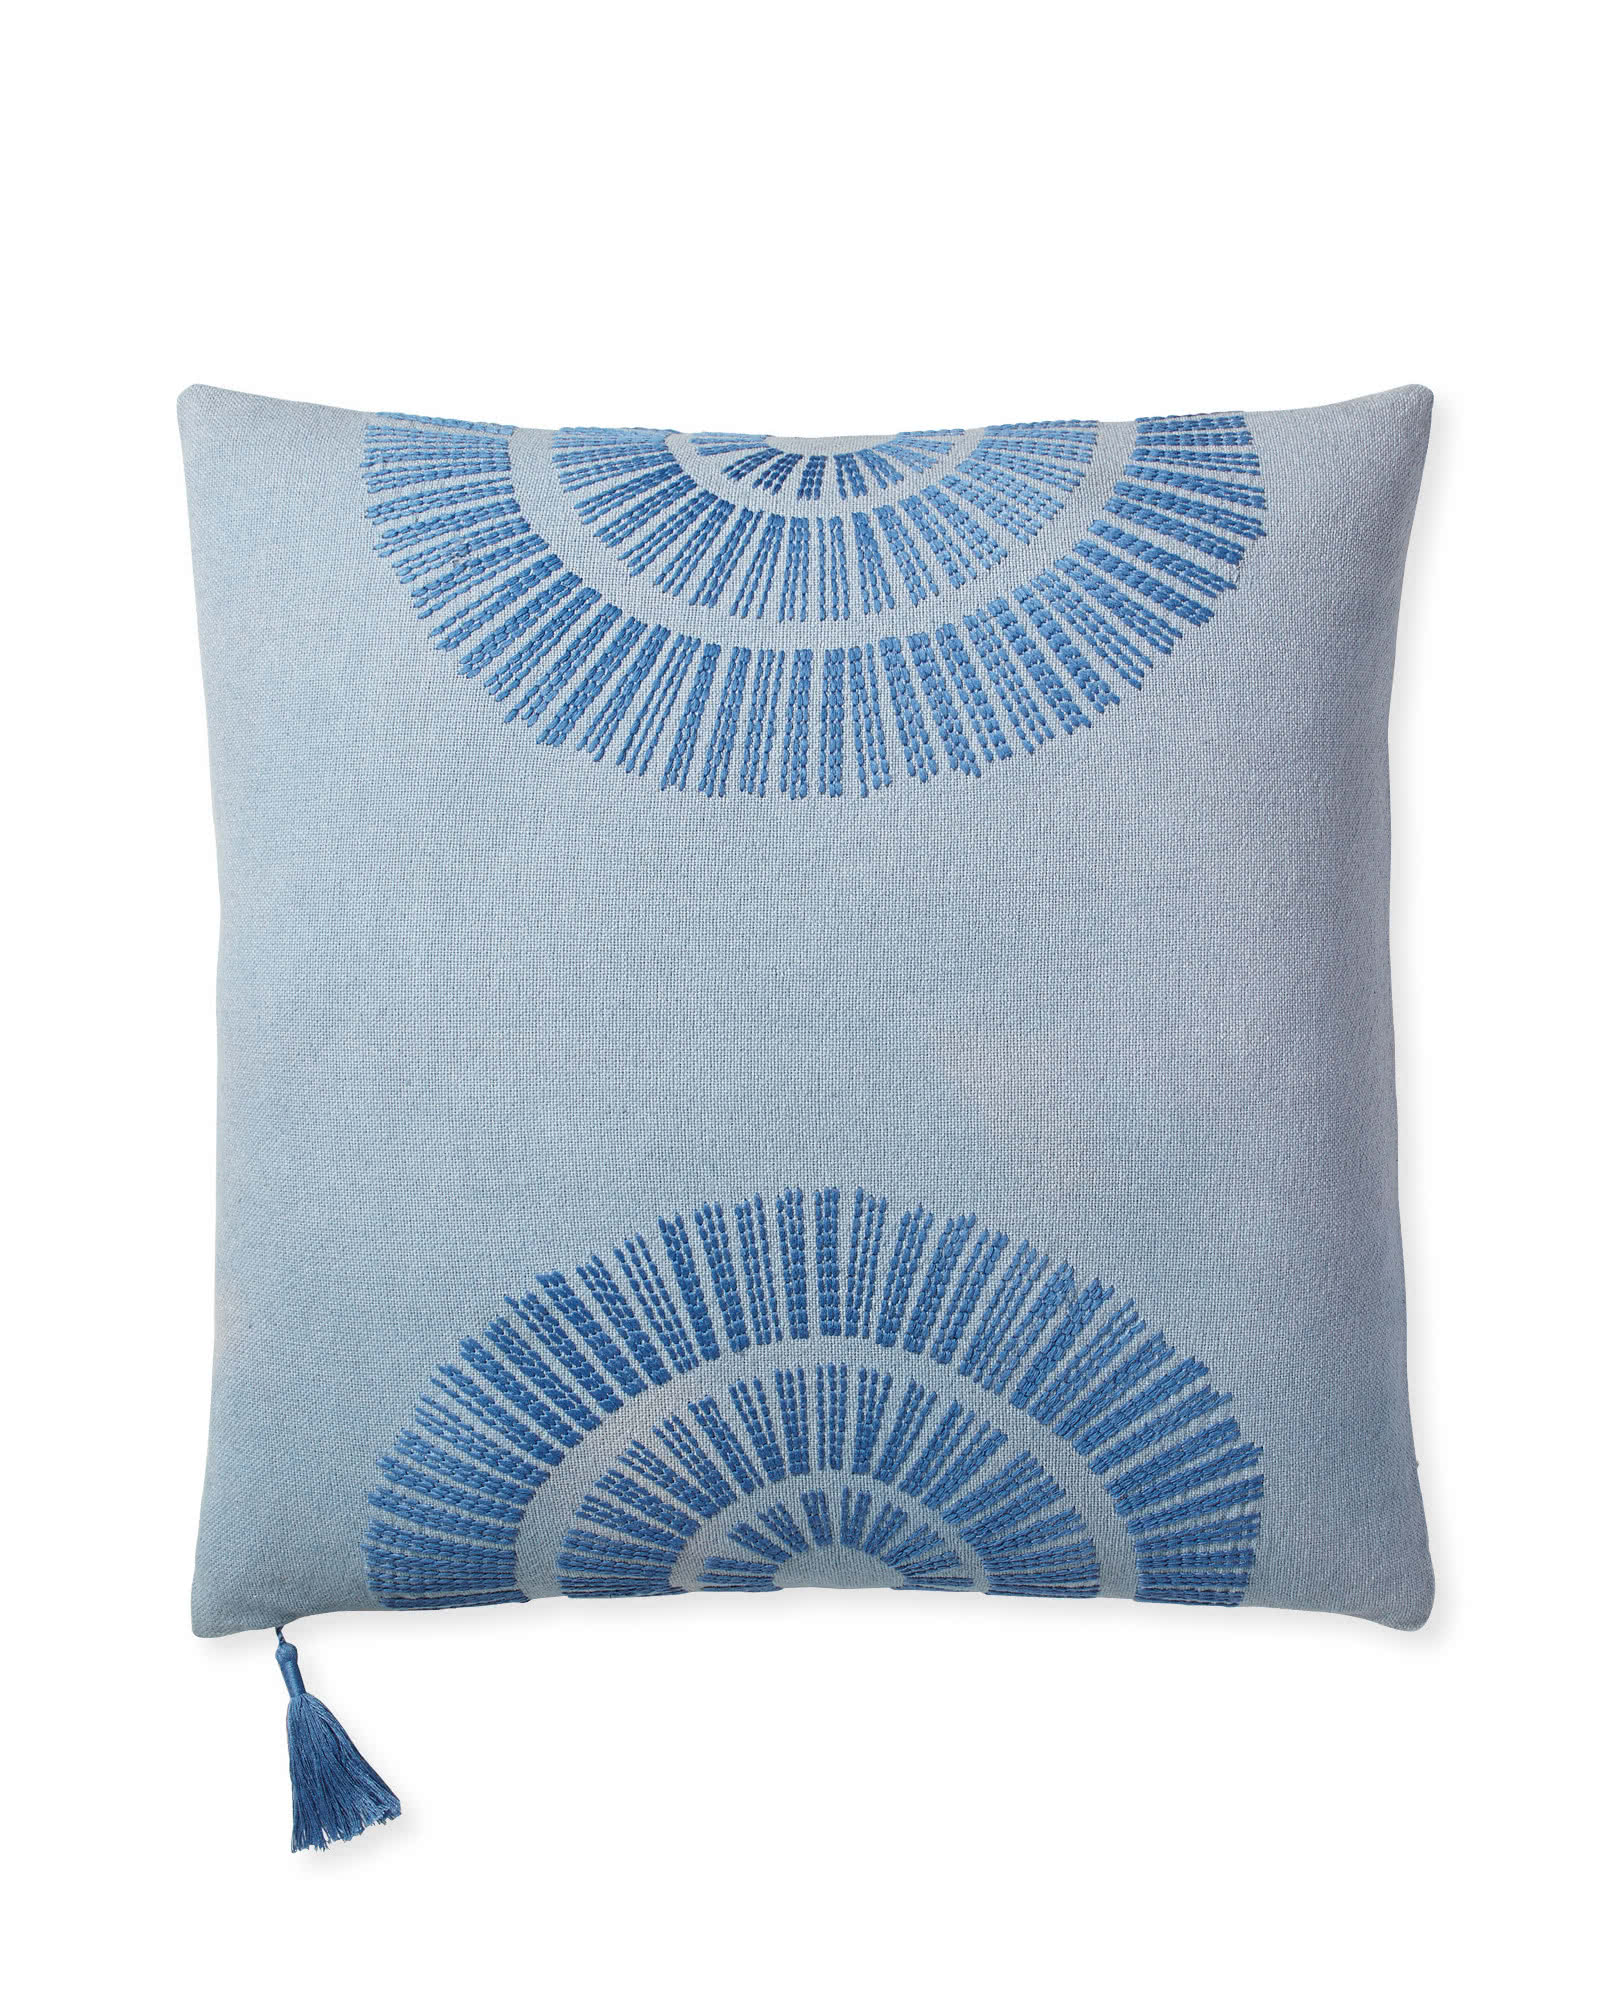 Sunset Pillow Cover, Harbor